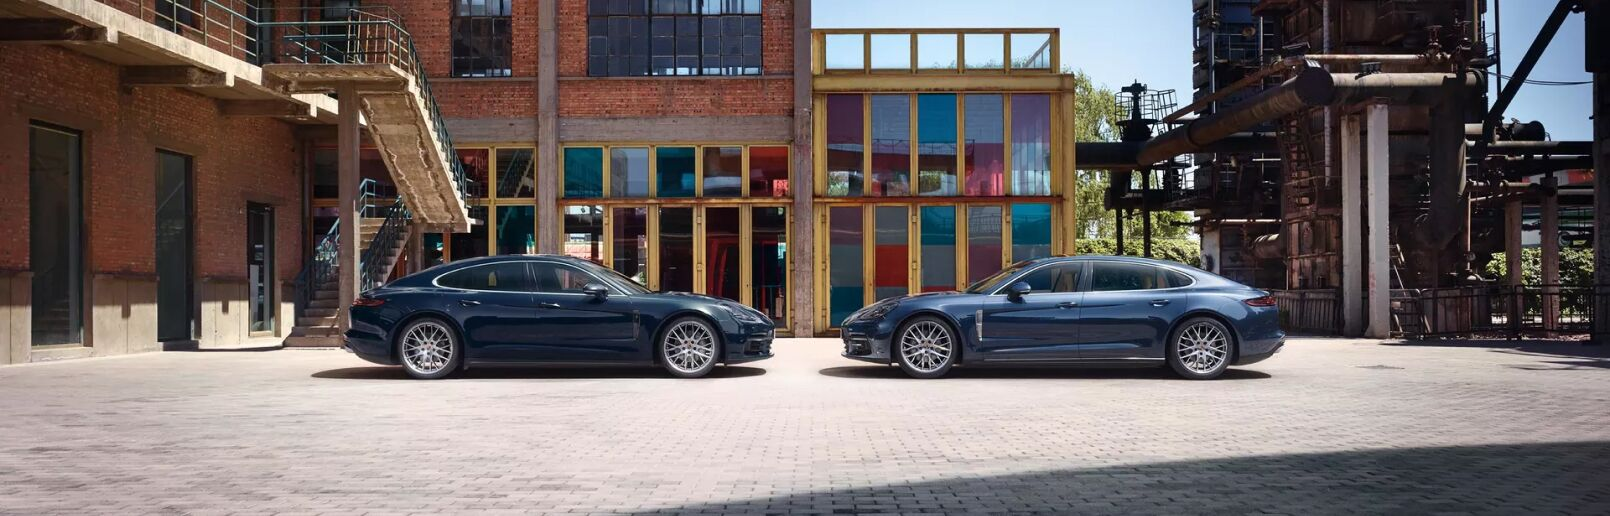 The 2019 Porsche Panamera available at Loeber Porsche near Kenilworth, IL